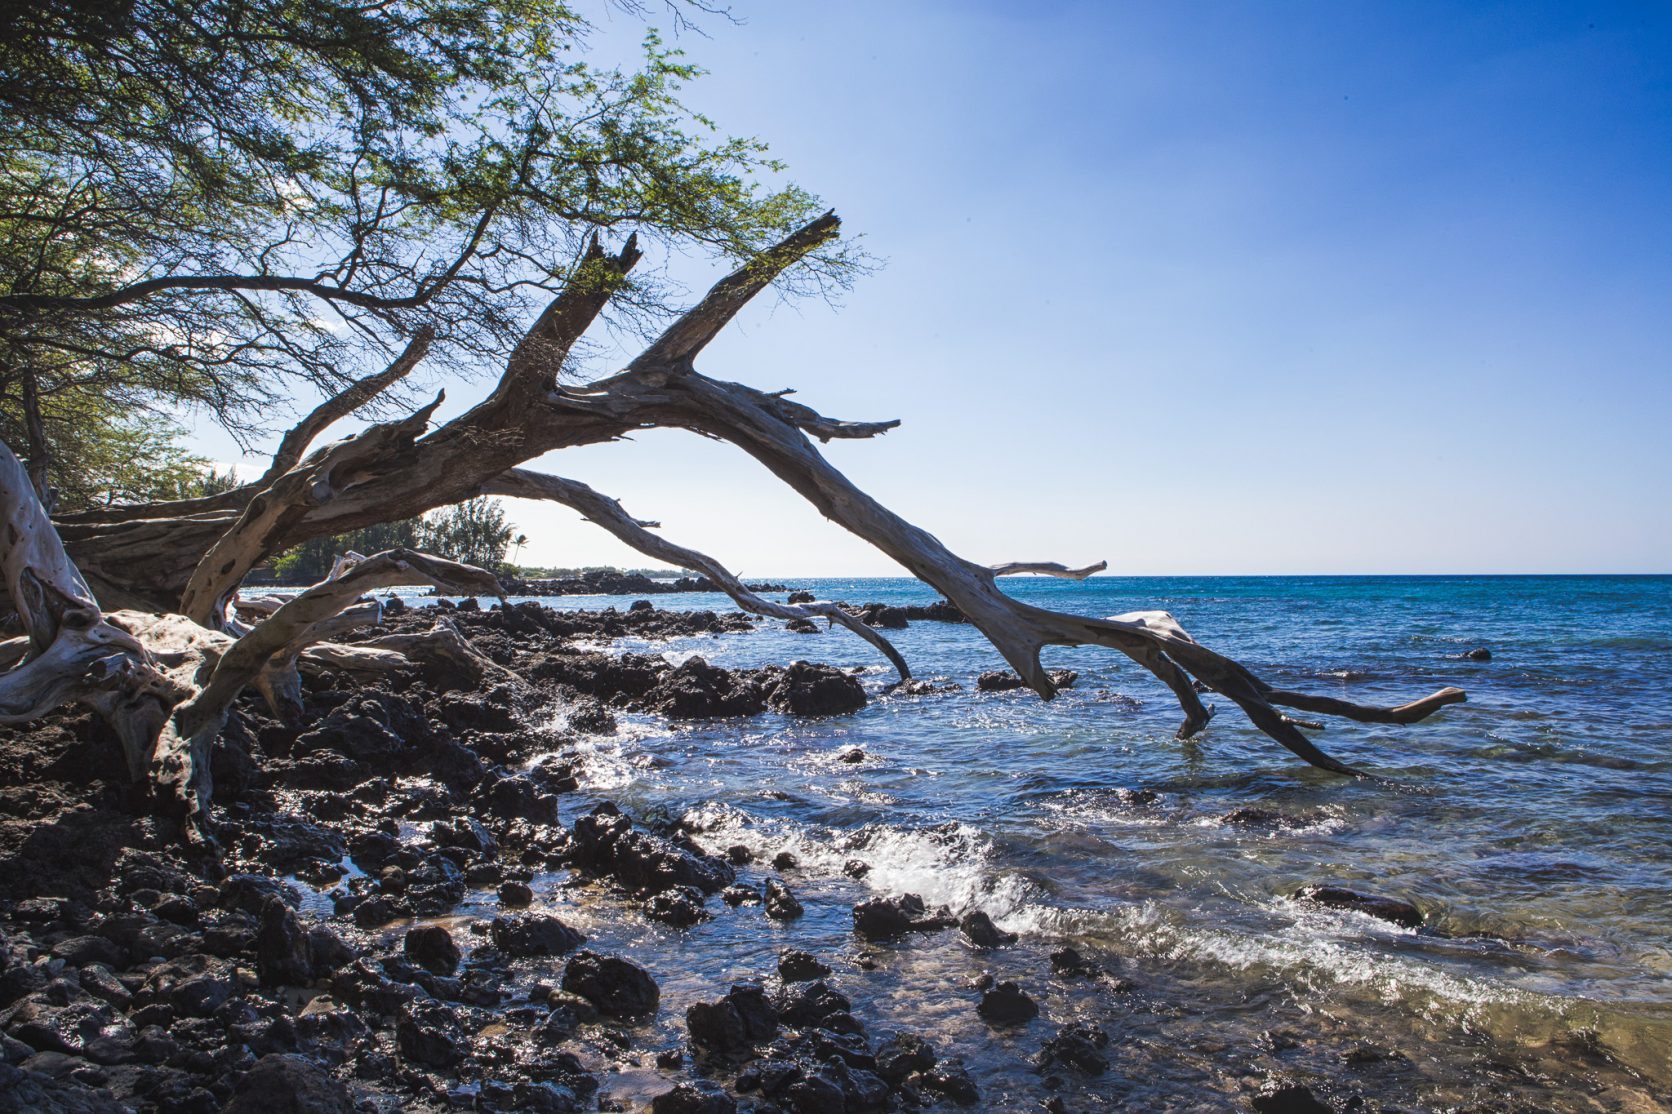 Beach 69 -Kailua Kona hawaii location big island photographer